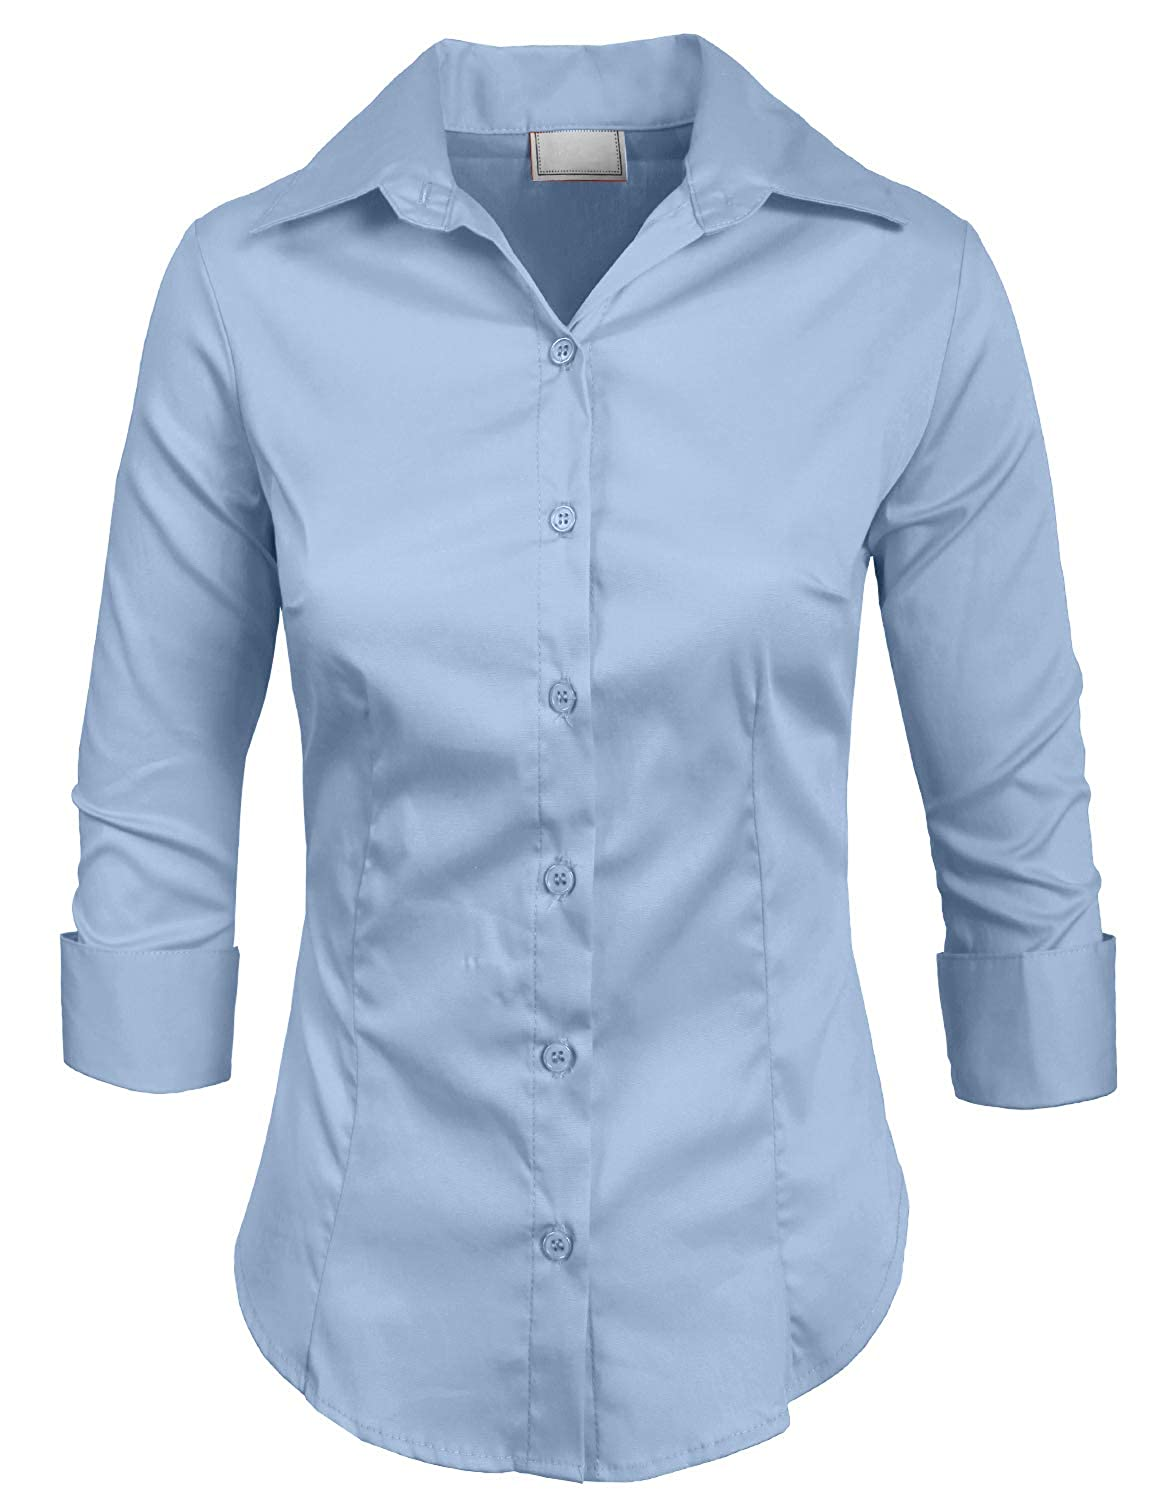 acf6c68358 NE PEOPLE Womens Stretch 3 4 Sleeve Roll Up Button Down Shirt NEWT01